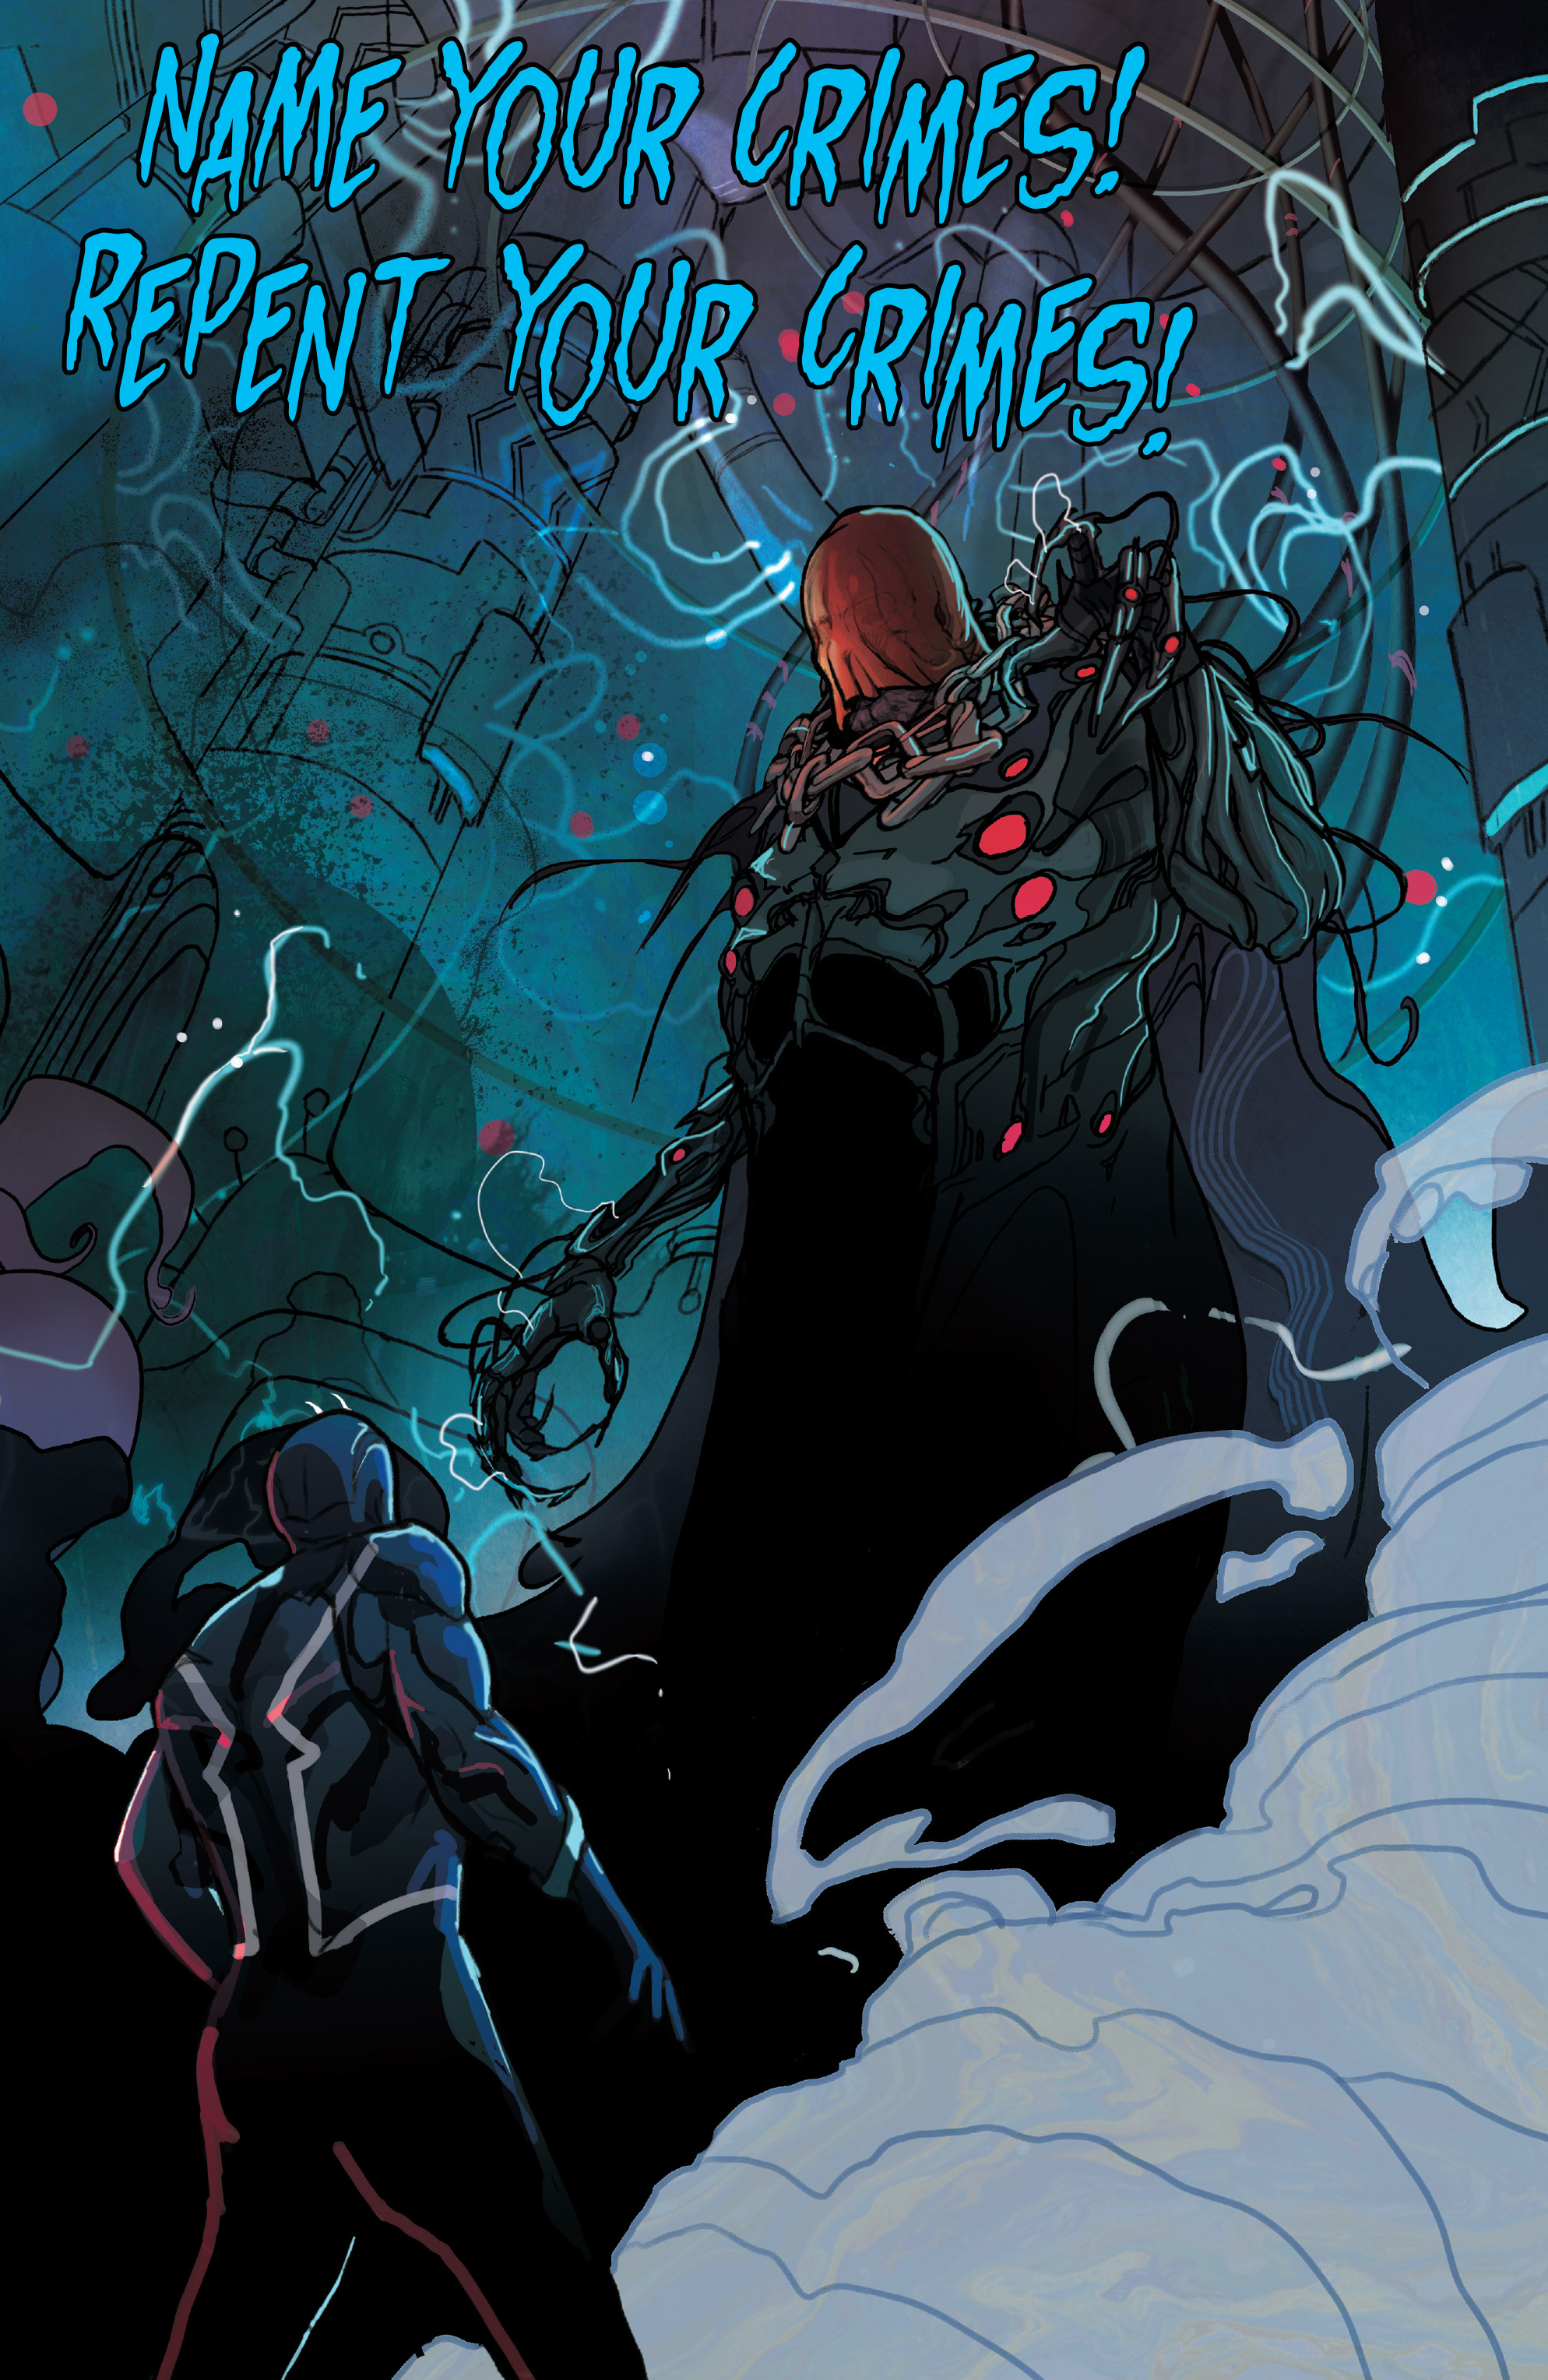 Read online Black Bolt comic -  Issue #1 - 19